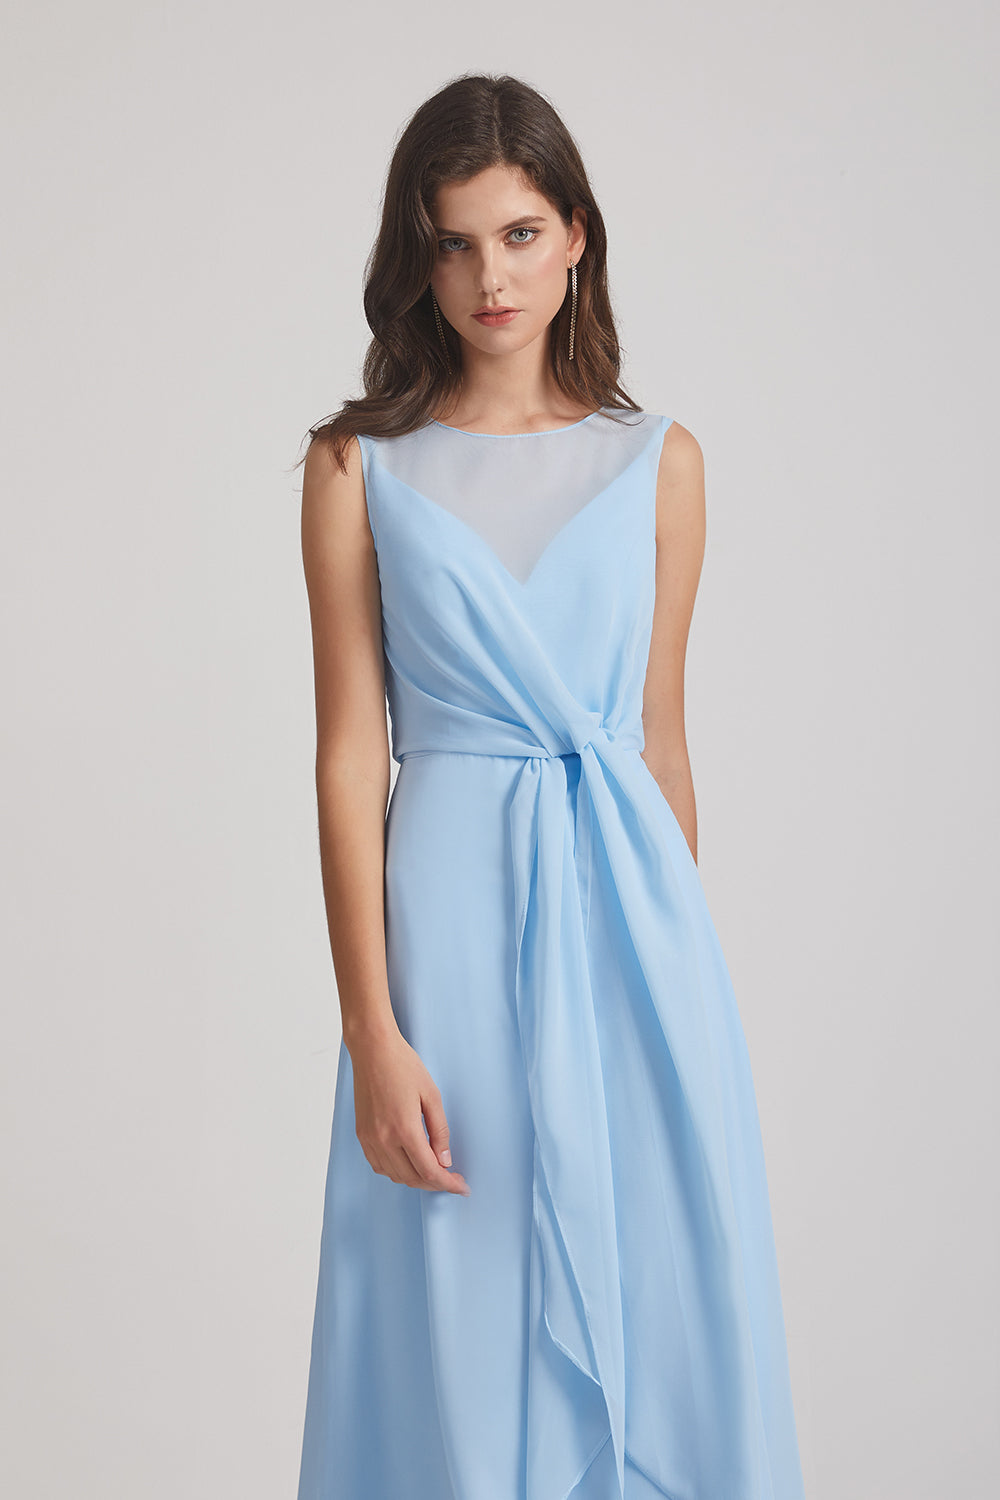 light blue sleeveless bridesmaids gown